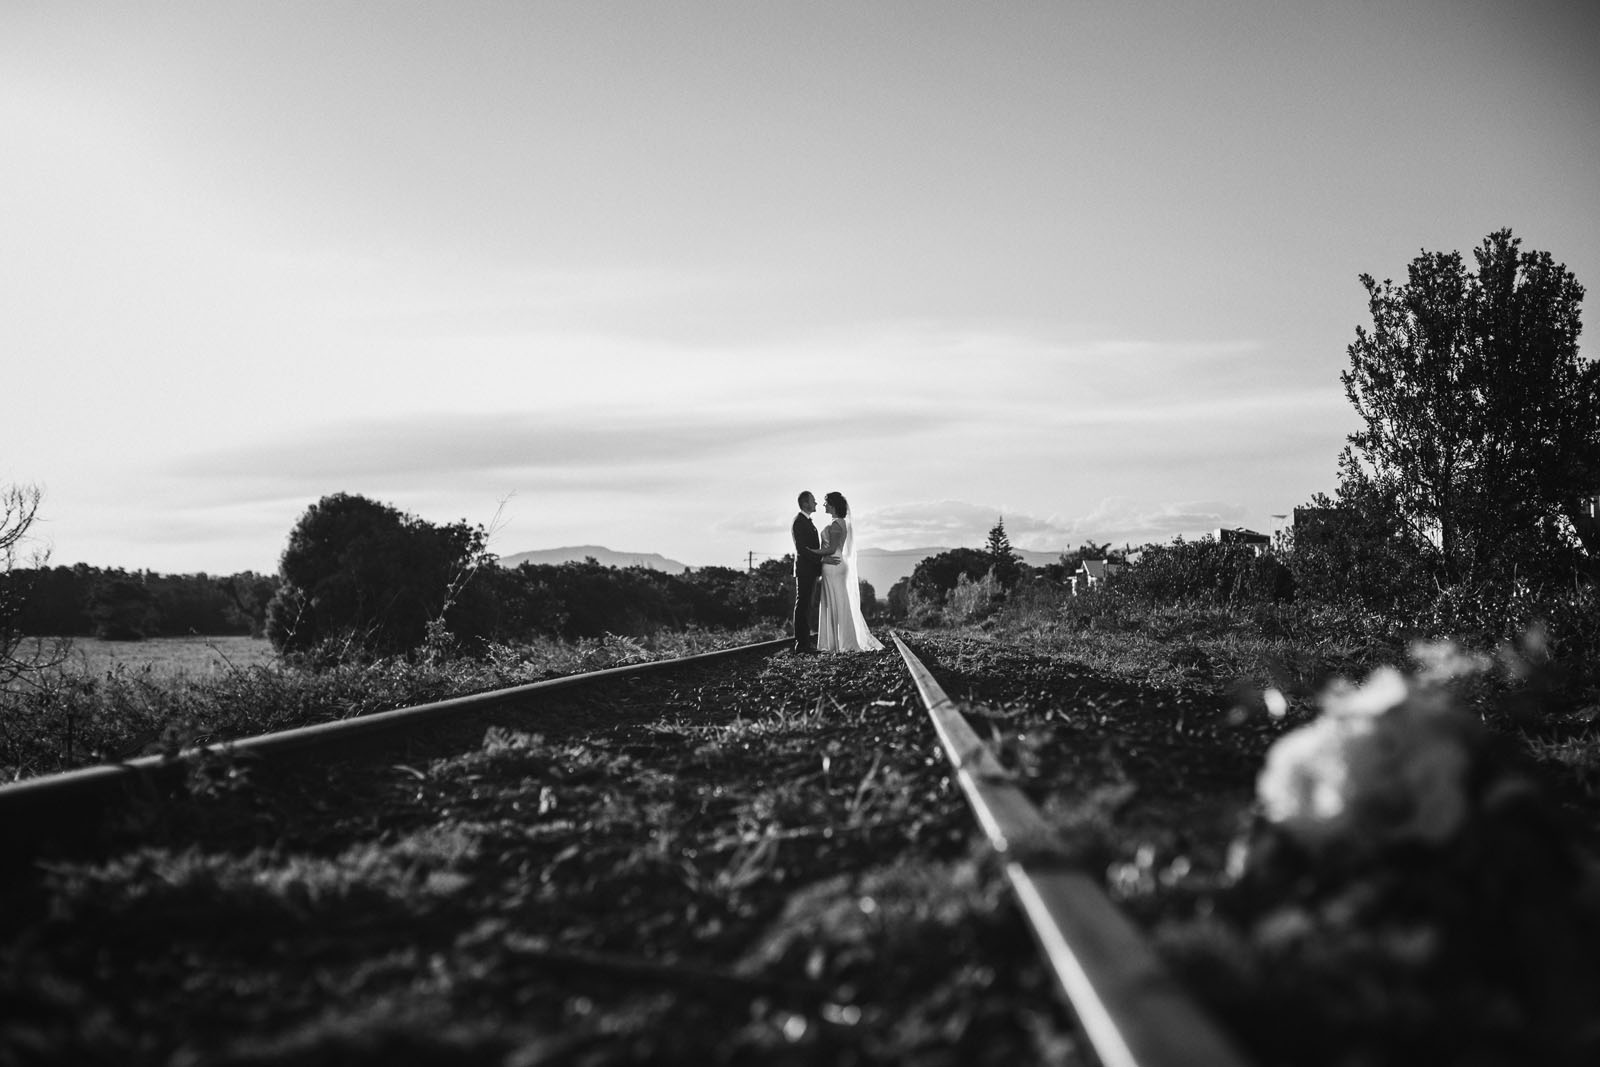 byron_bay_wedding_photogrpaher_552